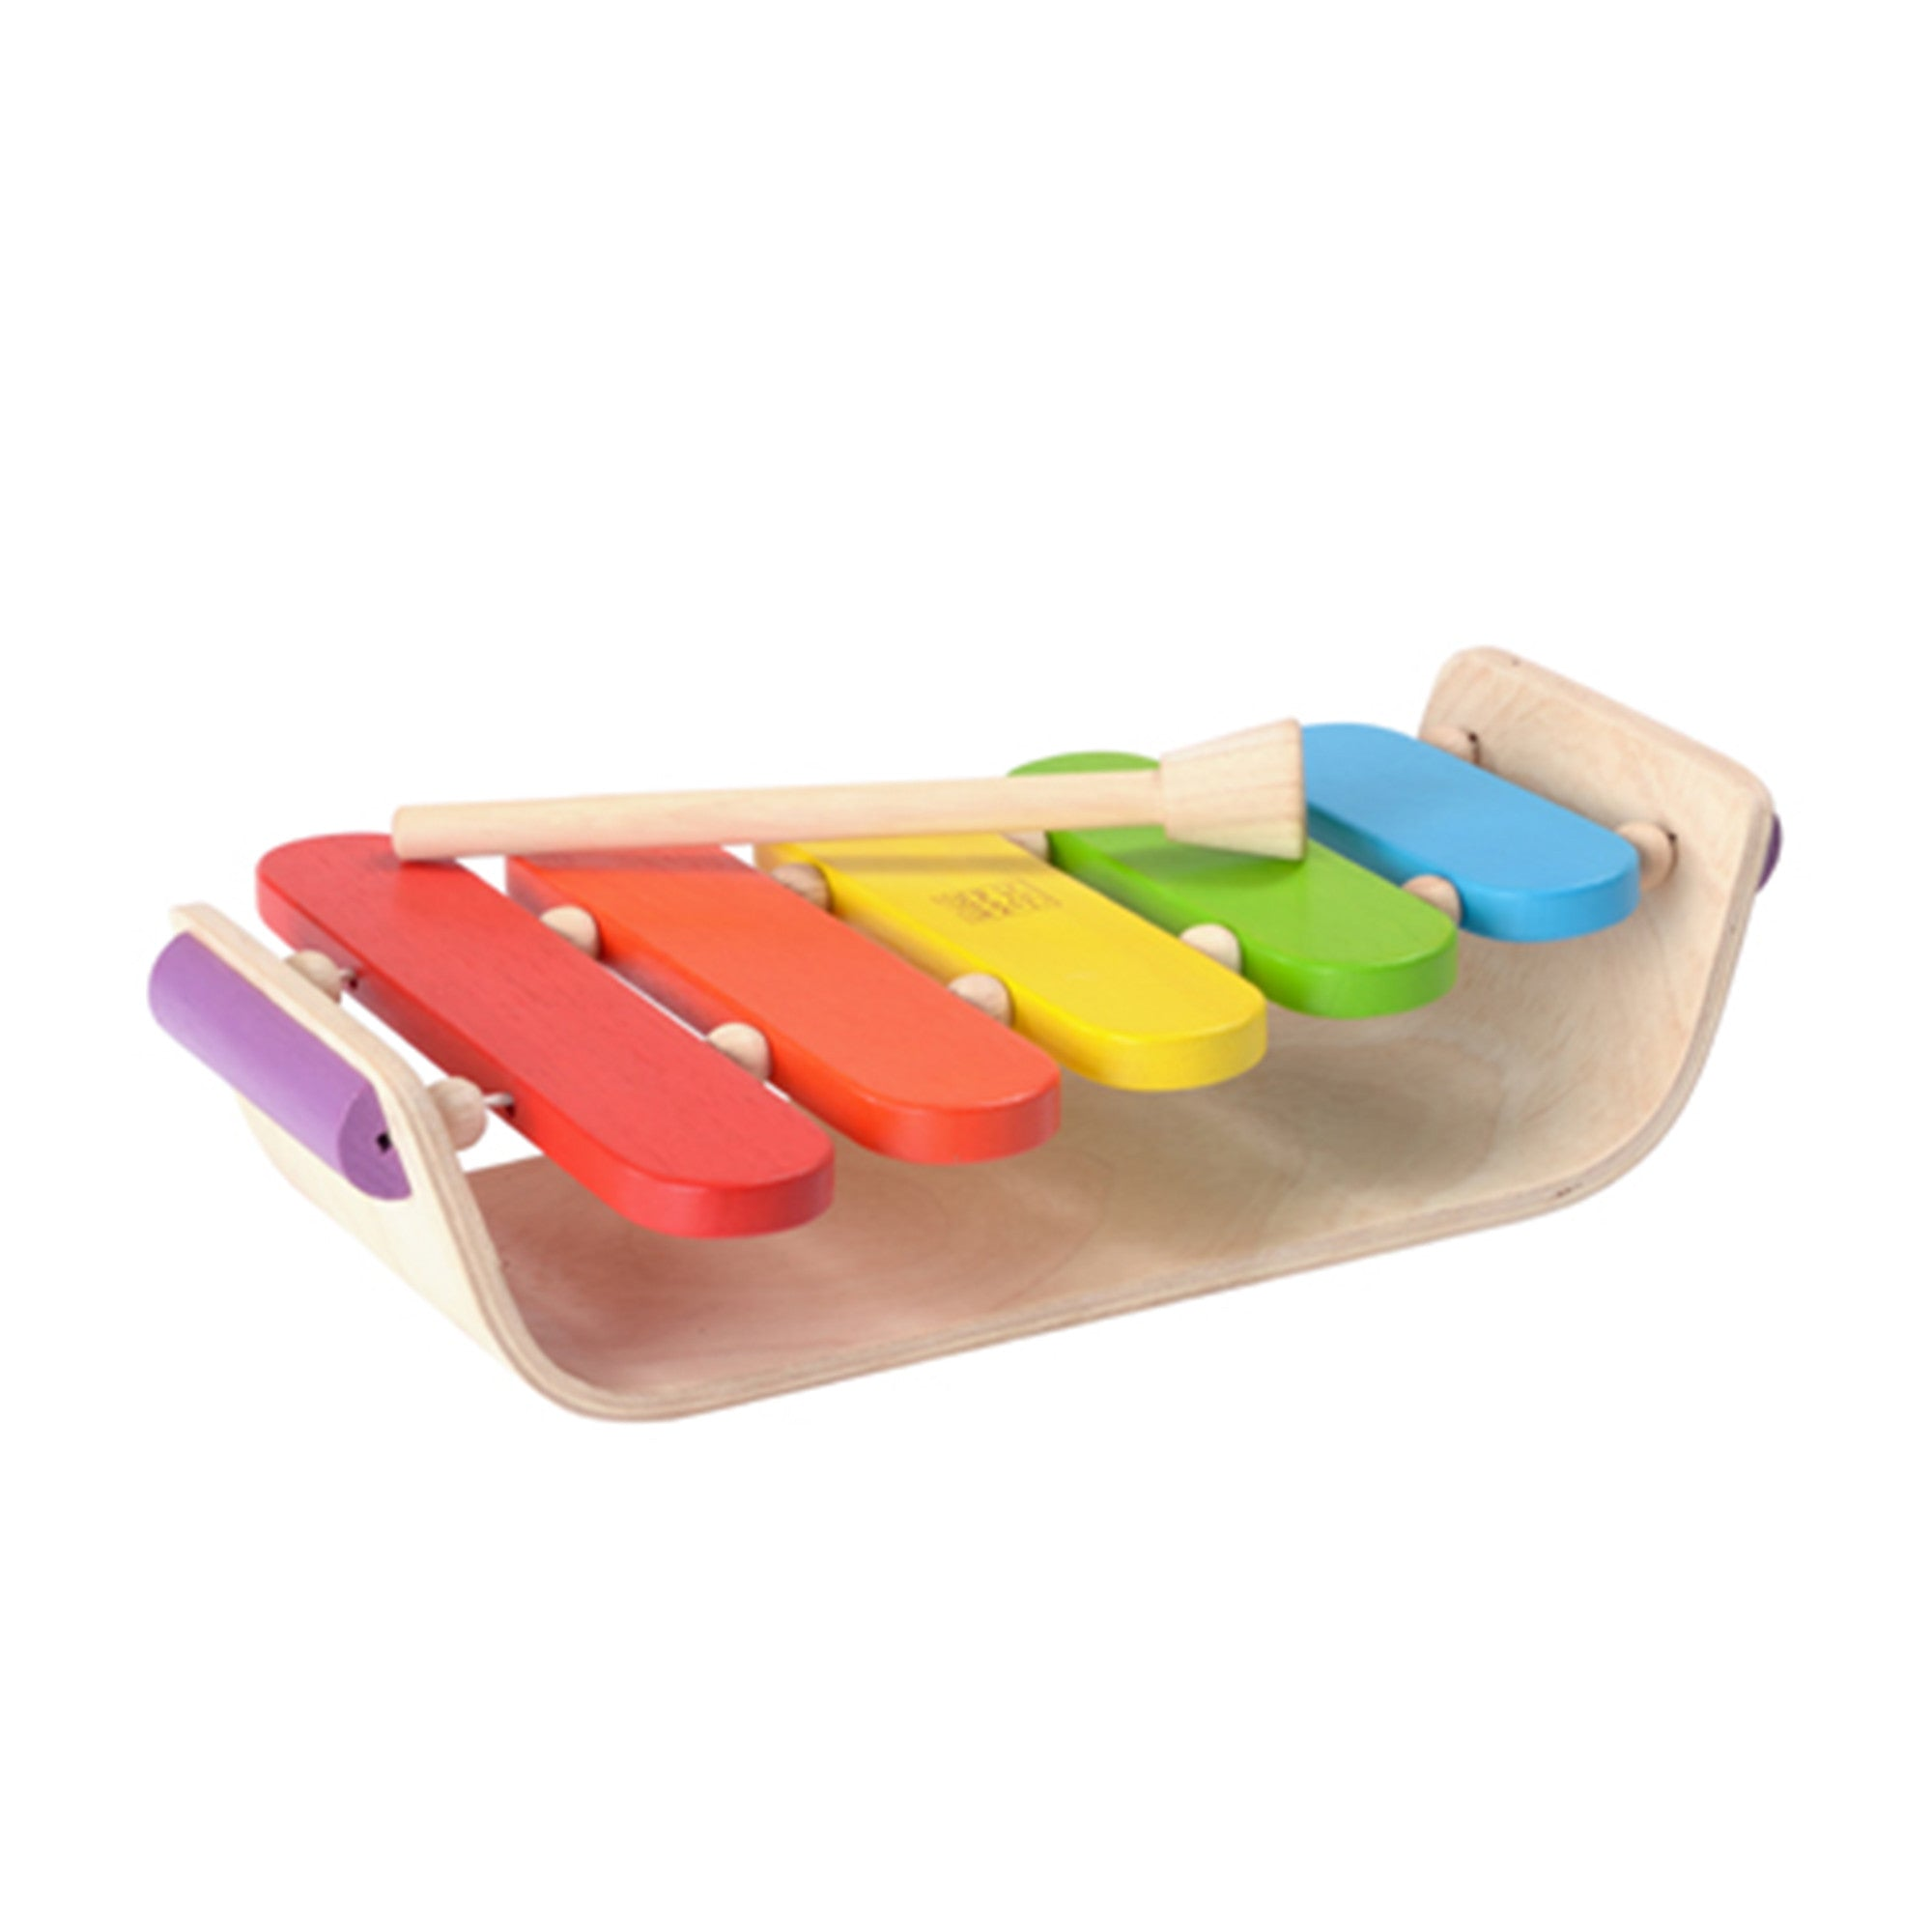 Plan Toys Oval Rainbow Xylophone PlanToys Musical Toys at Little Earth Nest Eco Shop